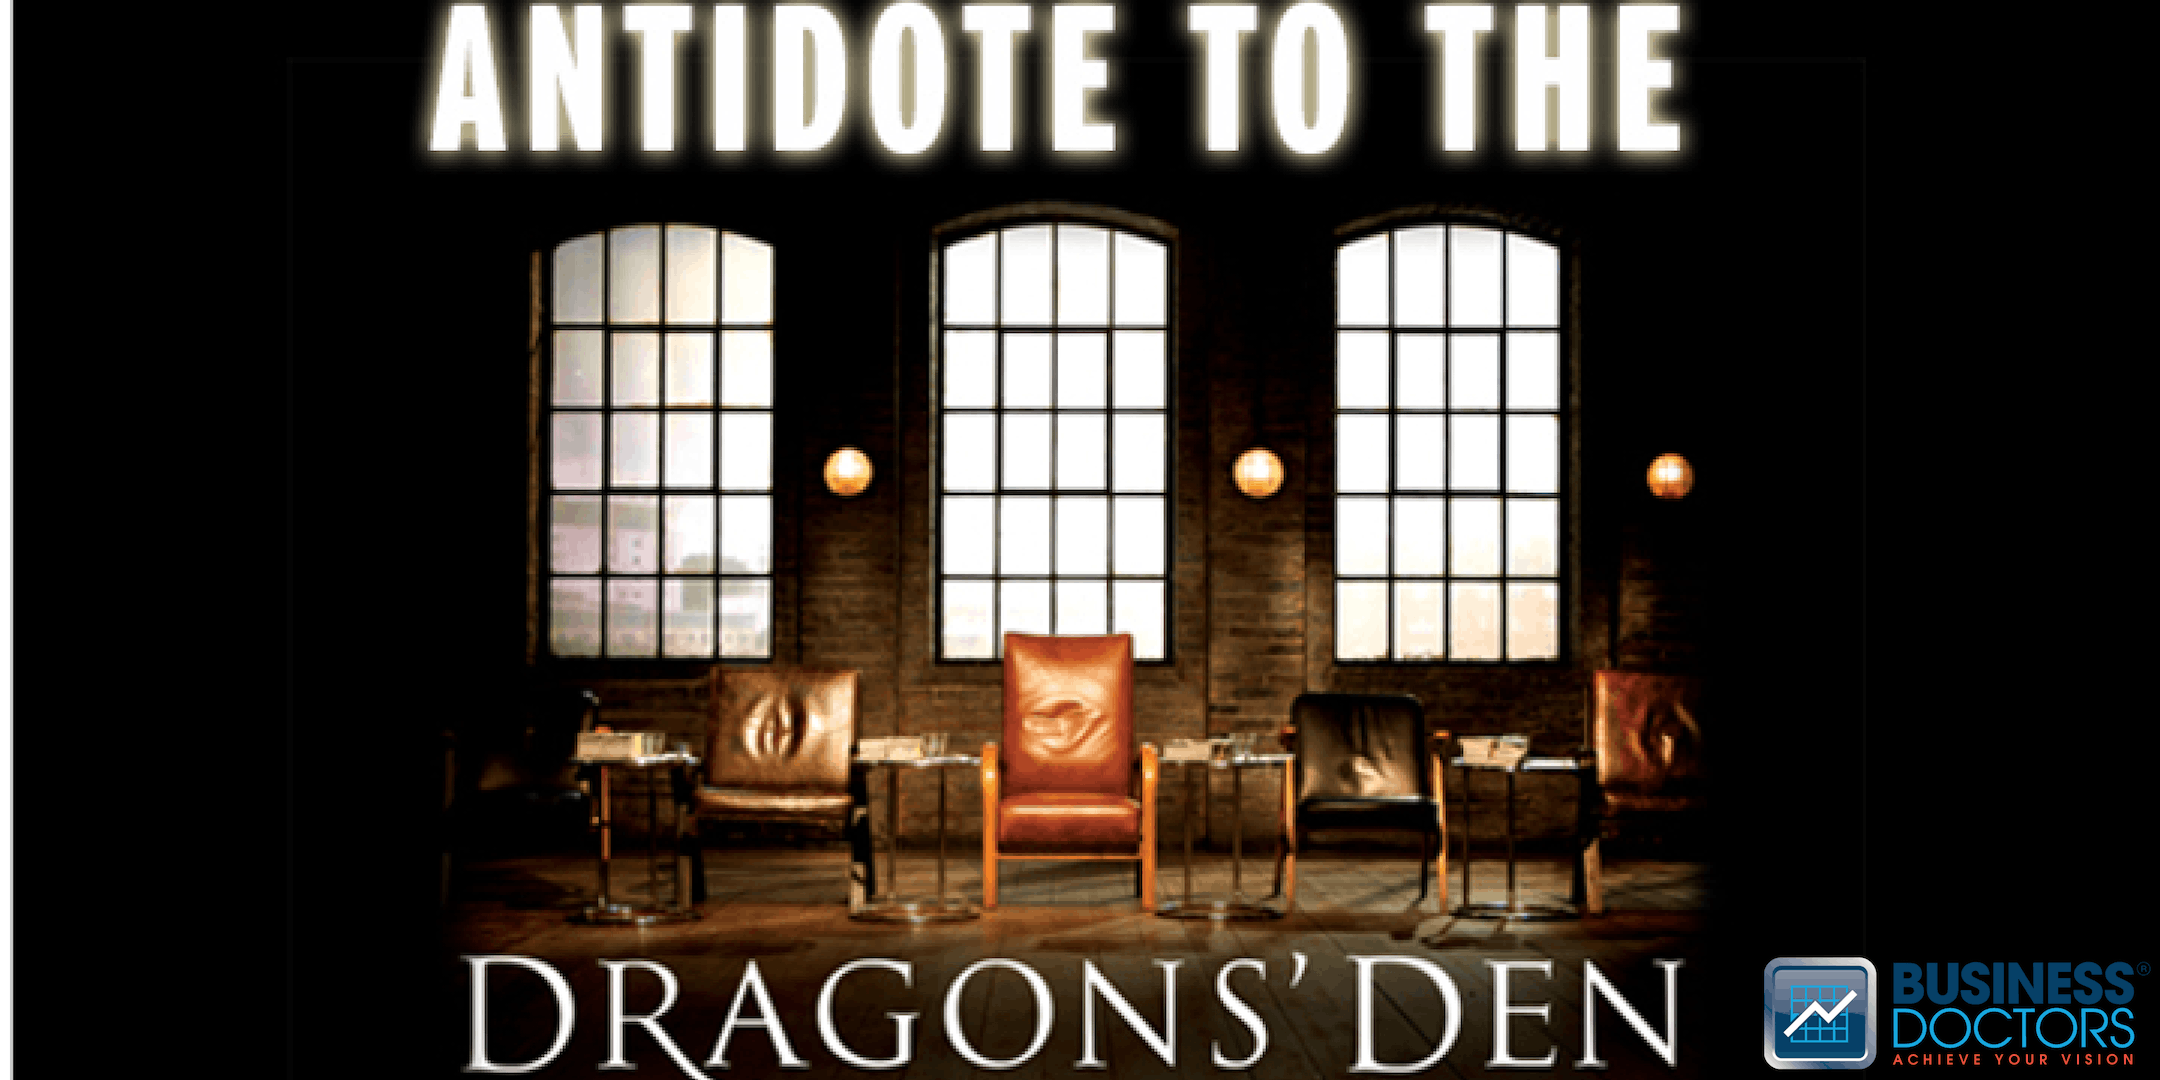 The Antidote to the Dragon's Den